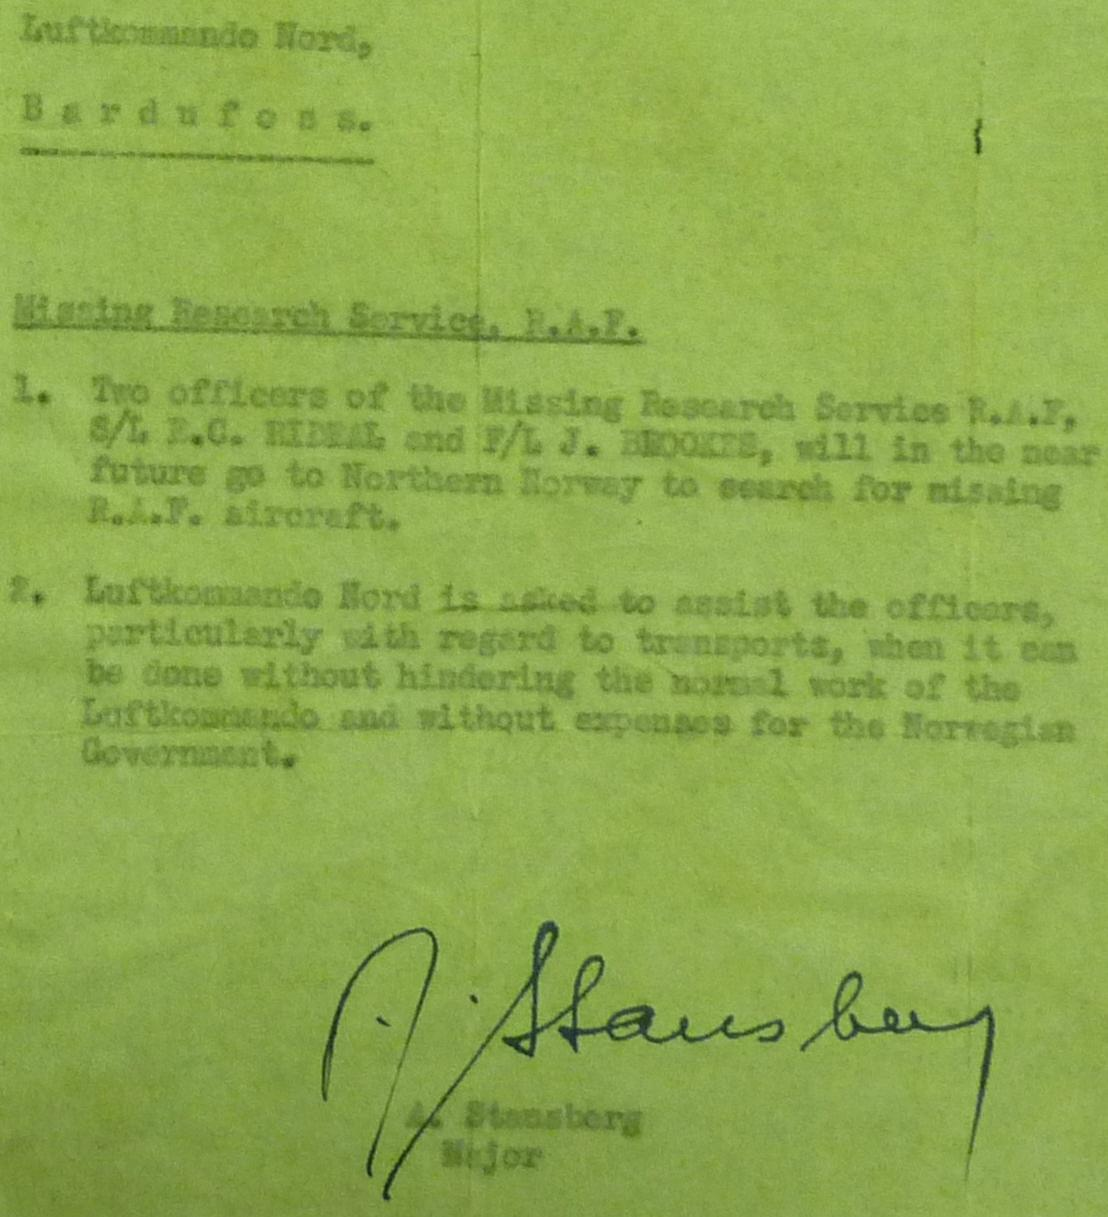 Norwegian Memo to Luftcommando Nord requesting assistance be given to Rideal and Brooks